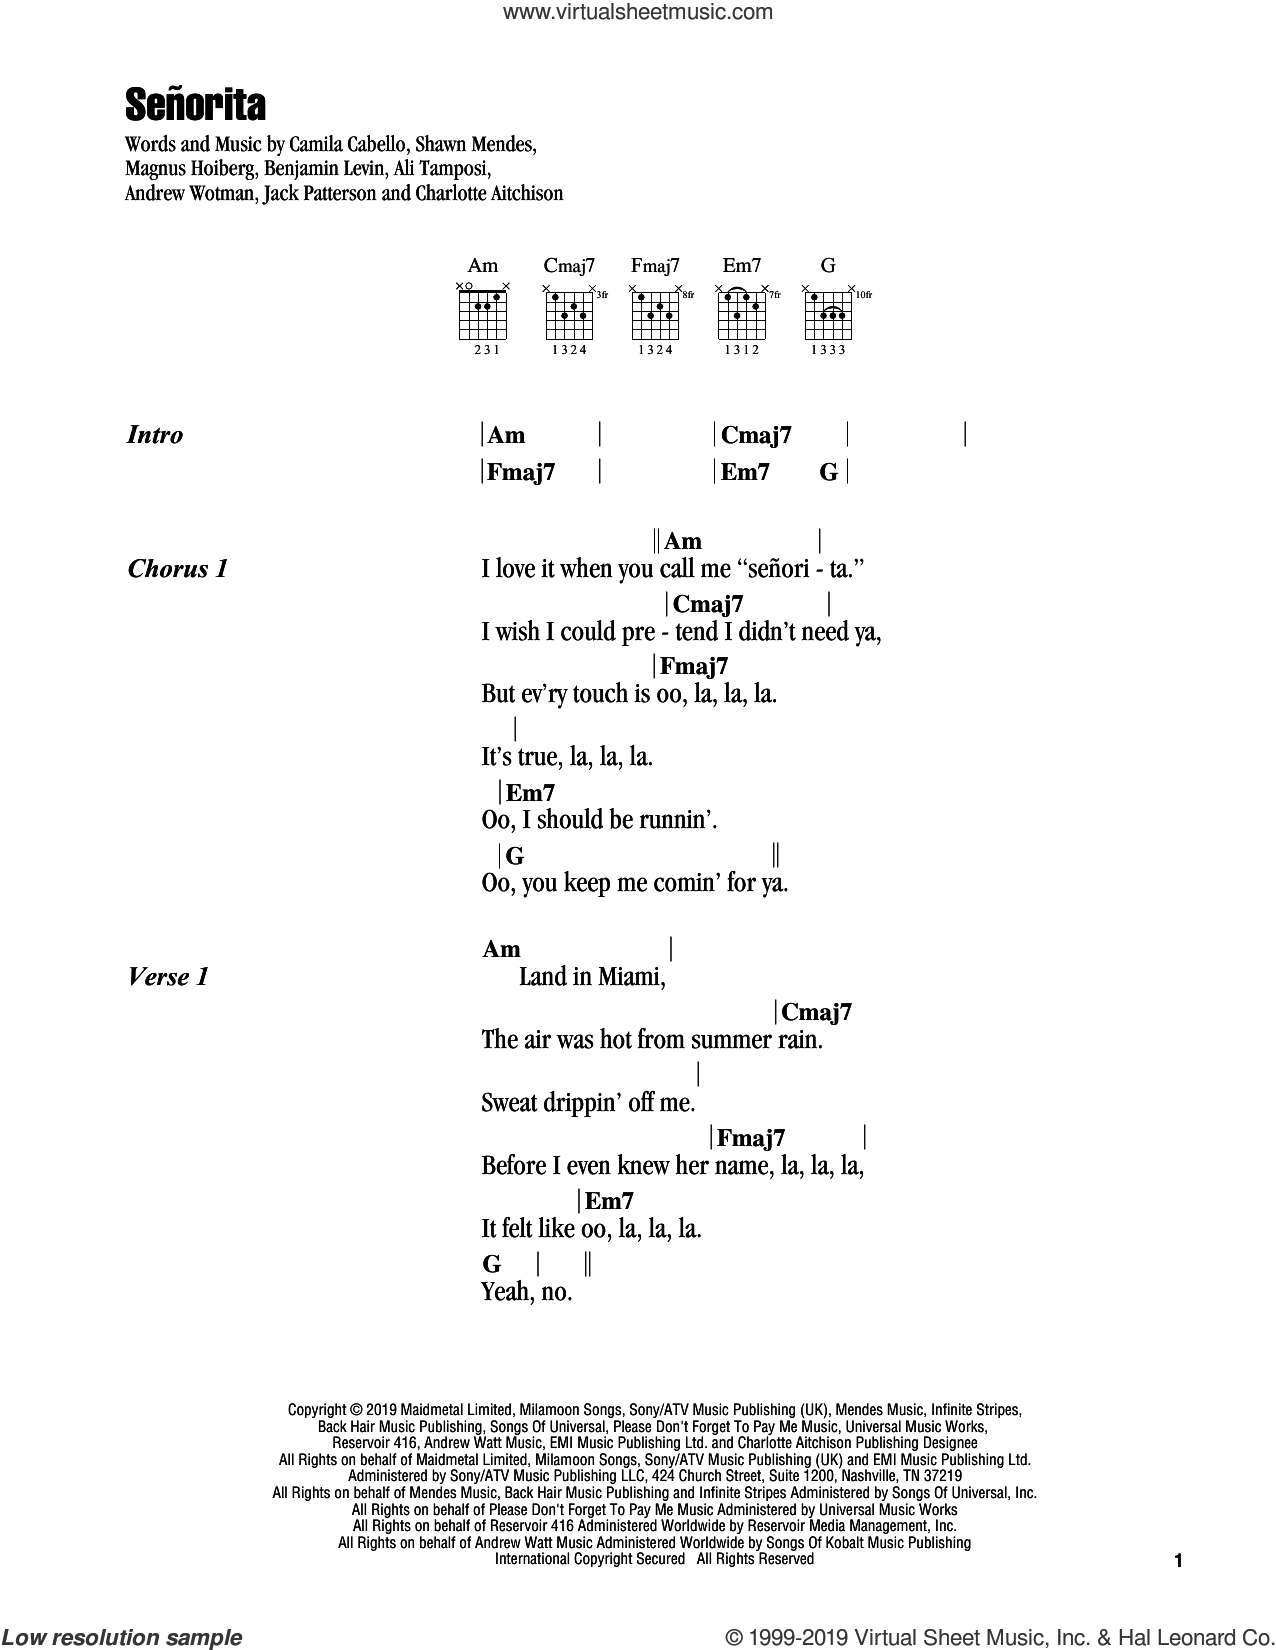 Senorita sheet music for guitar (chords) by Shawn Mendes and Camila Cabello and Shawn Mendes & Camila Cabello, Ali Tamposi, Andrew Wotman, Benjamin Levin, Camila Cabello, Charlotte Aitchison, Jack Patterson, Magnus Hoiberg and Shawn Mendes, intermediate skill level